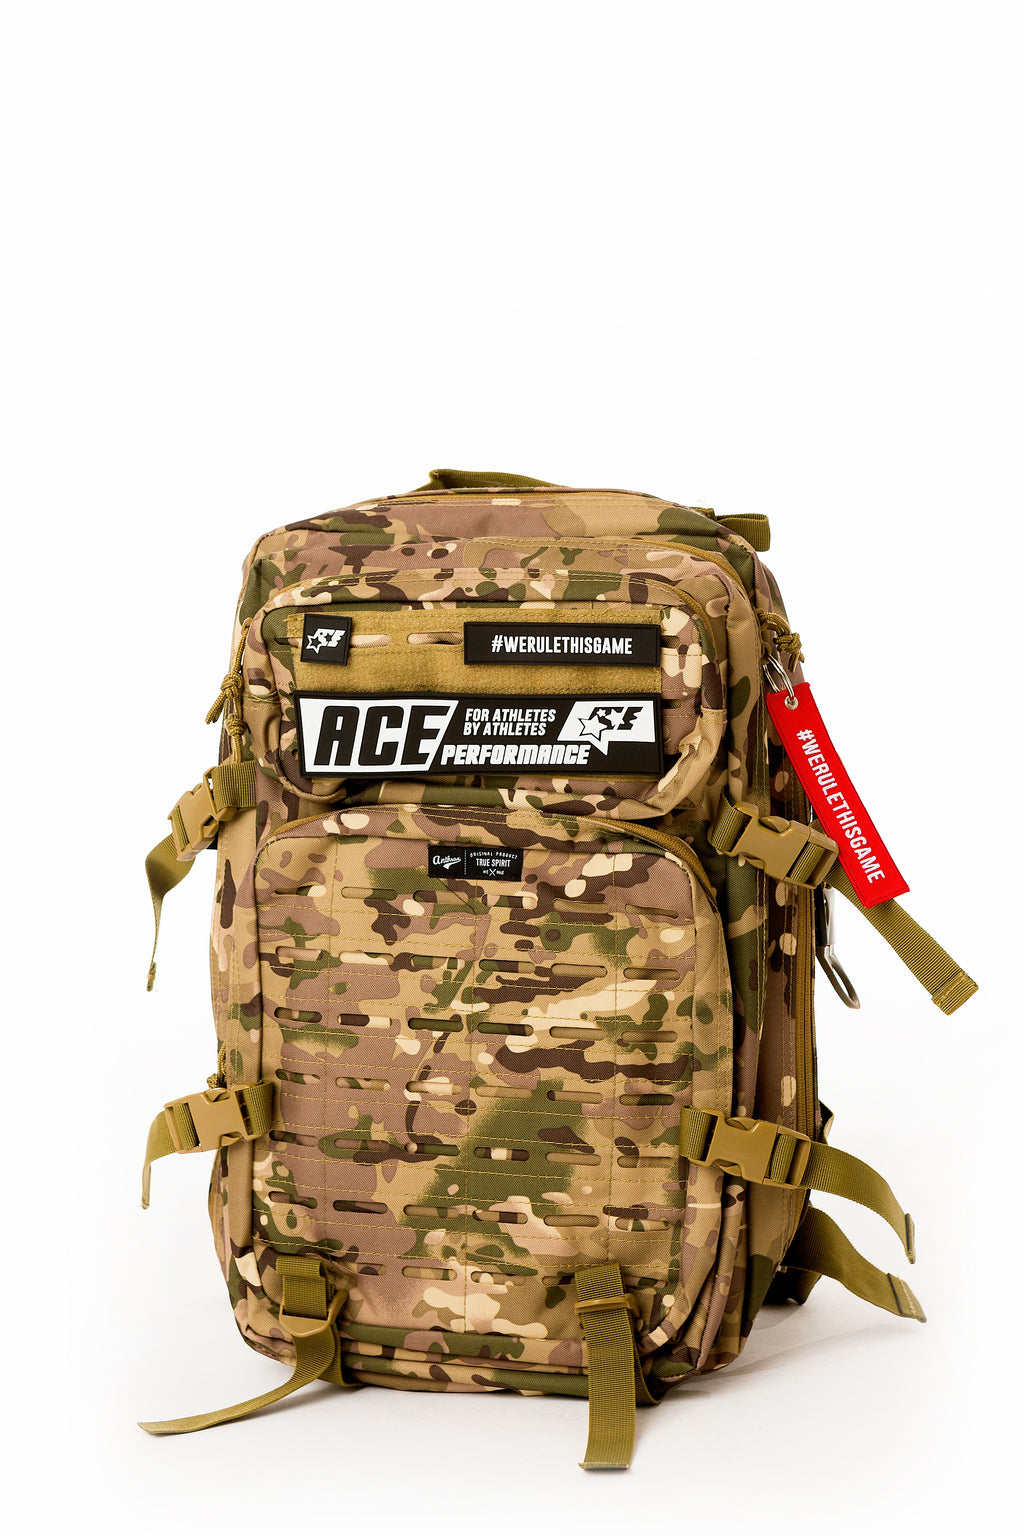 DEPLOYMENT BACK PACK - CAMO - ACEPERFORMANCE